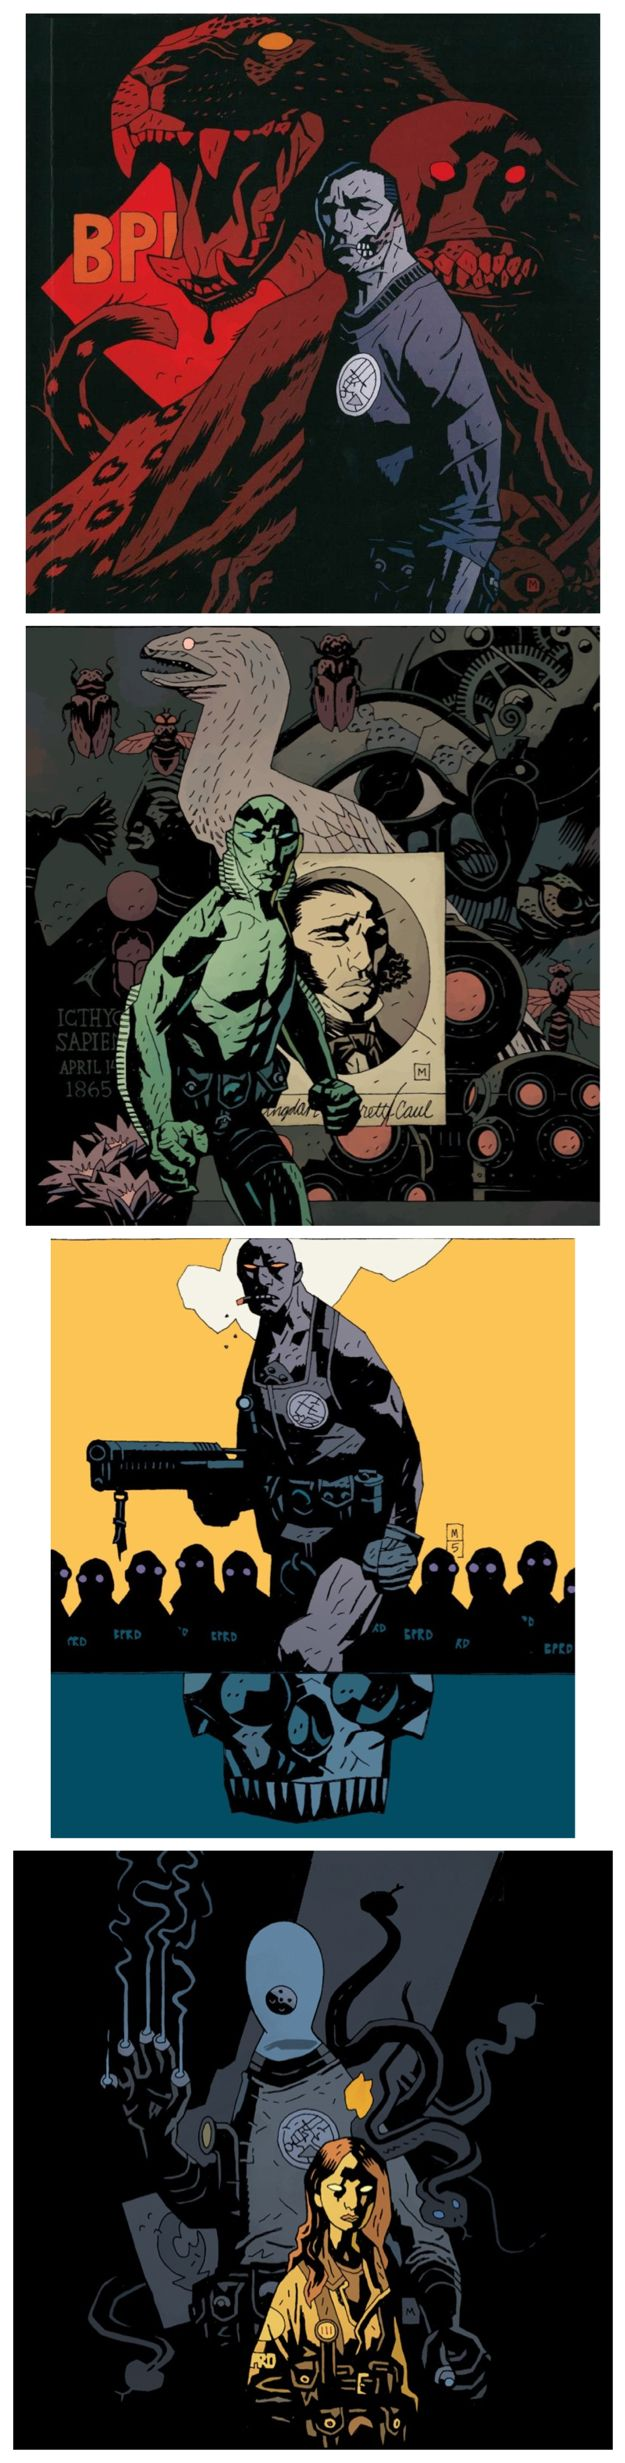 The Bureau for Paranormal Research and Defense Agents: Ben Daimio, Abe Sapien, Roger the Homunculus, Johann Kraus and Liz Sherman. Art by Mike Mignola.